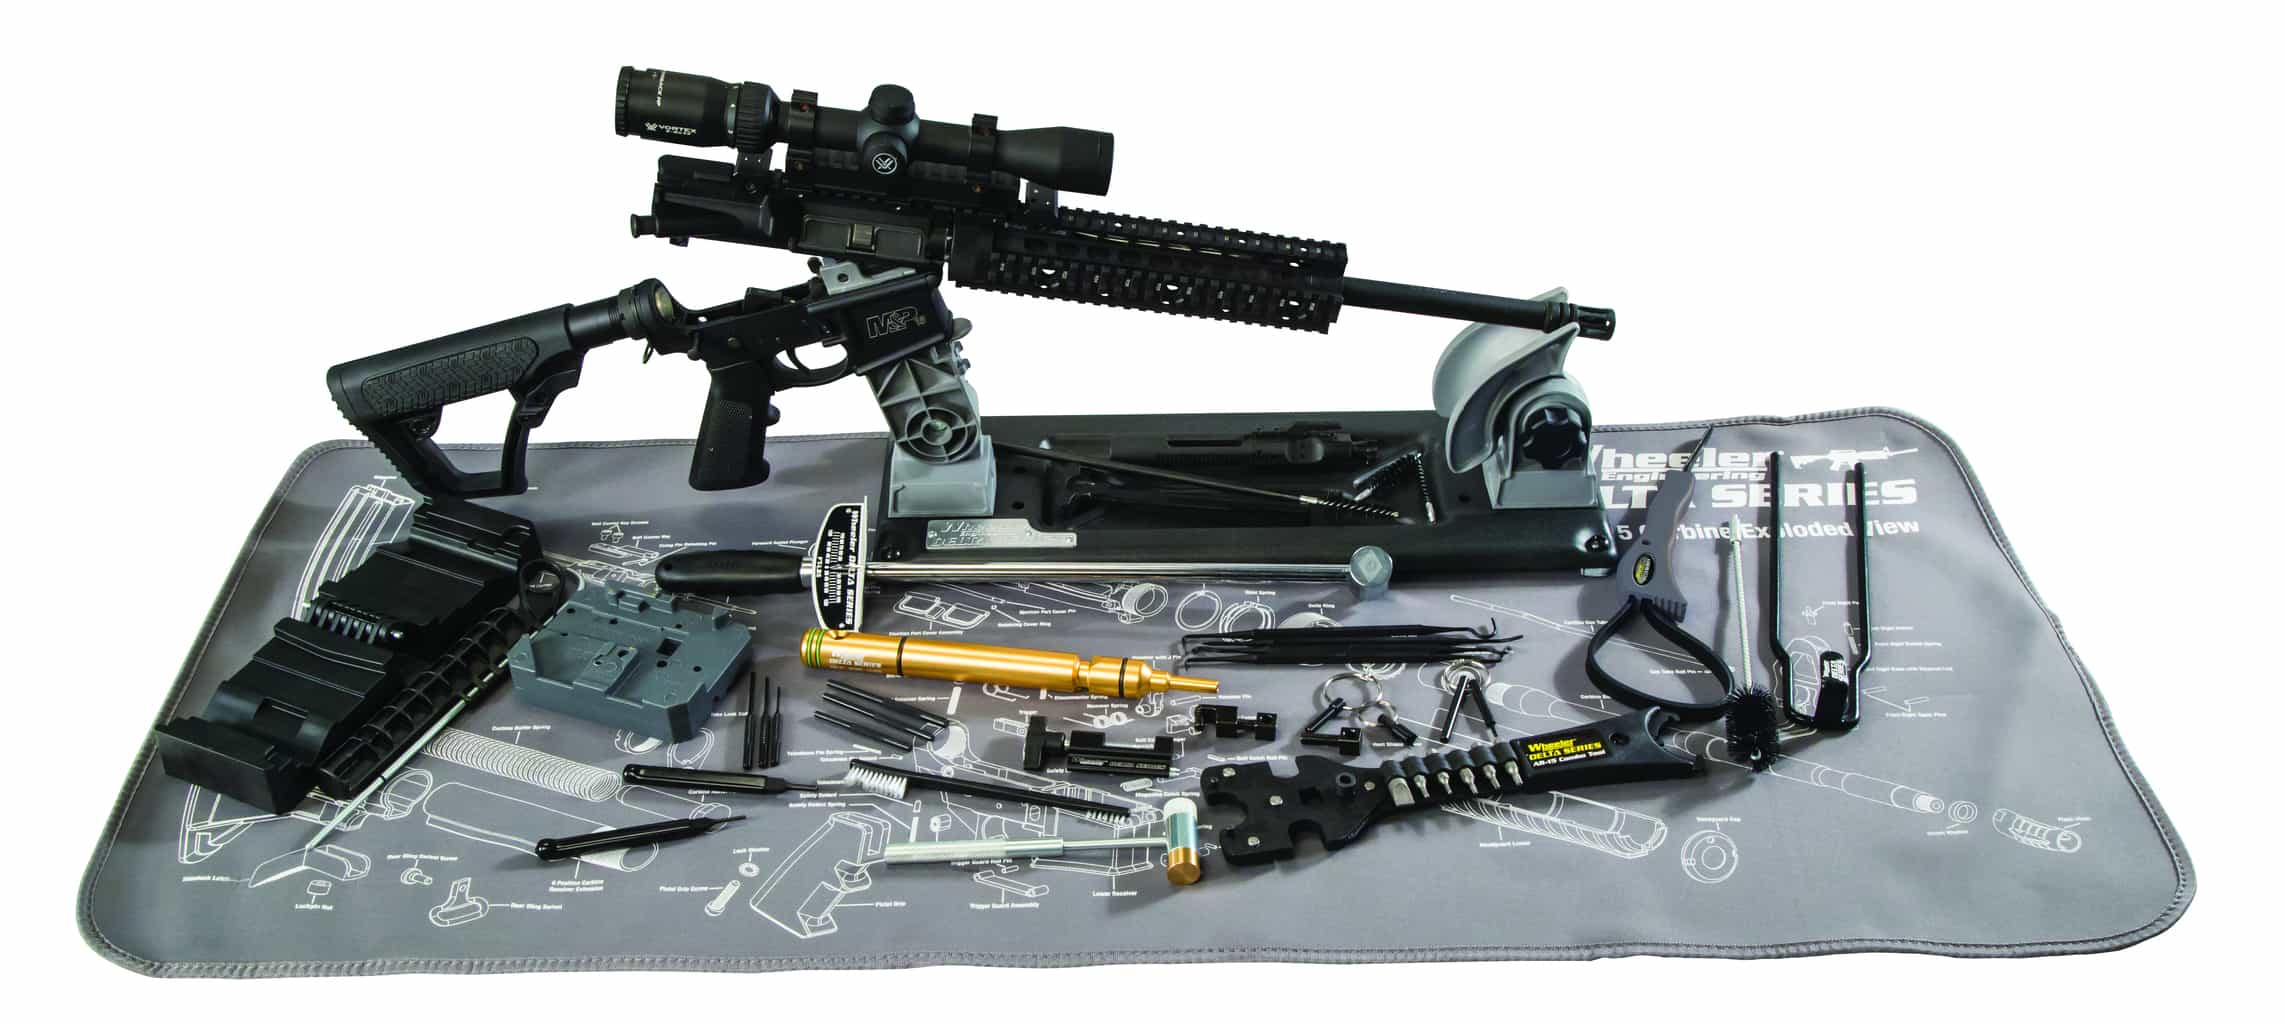 AR Armorer's Ultra Kit - 156559 156559 display shot